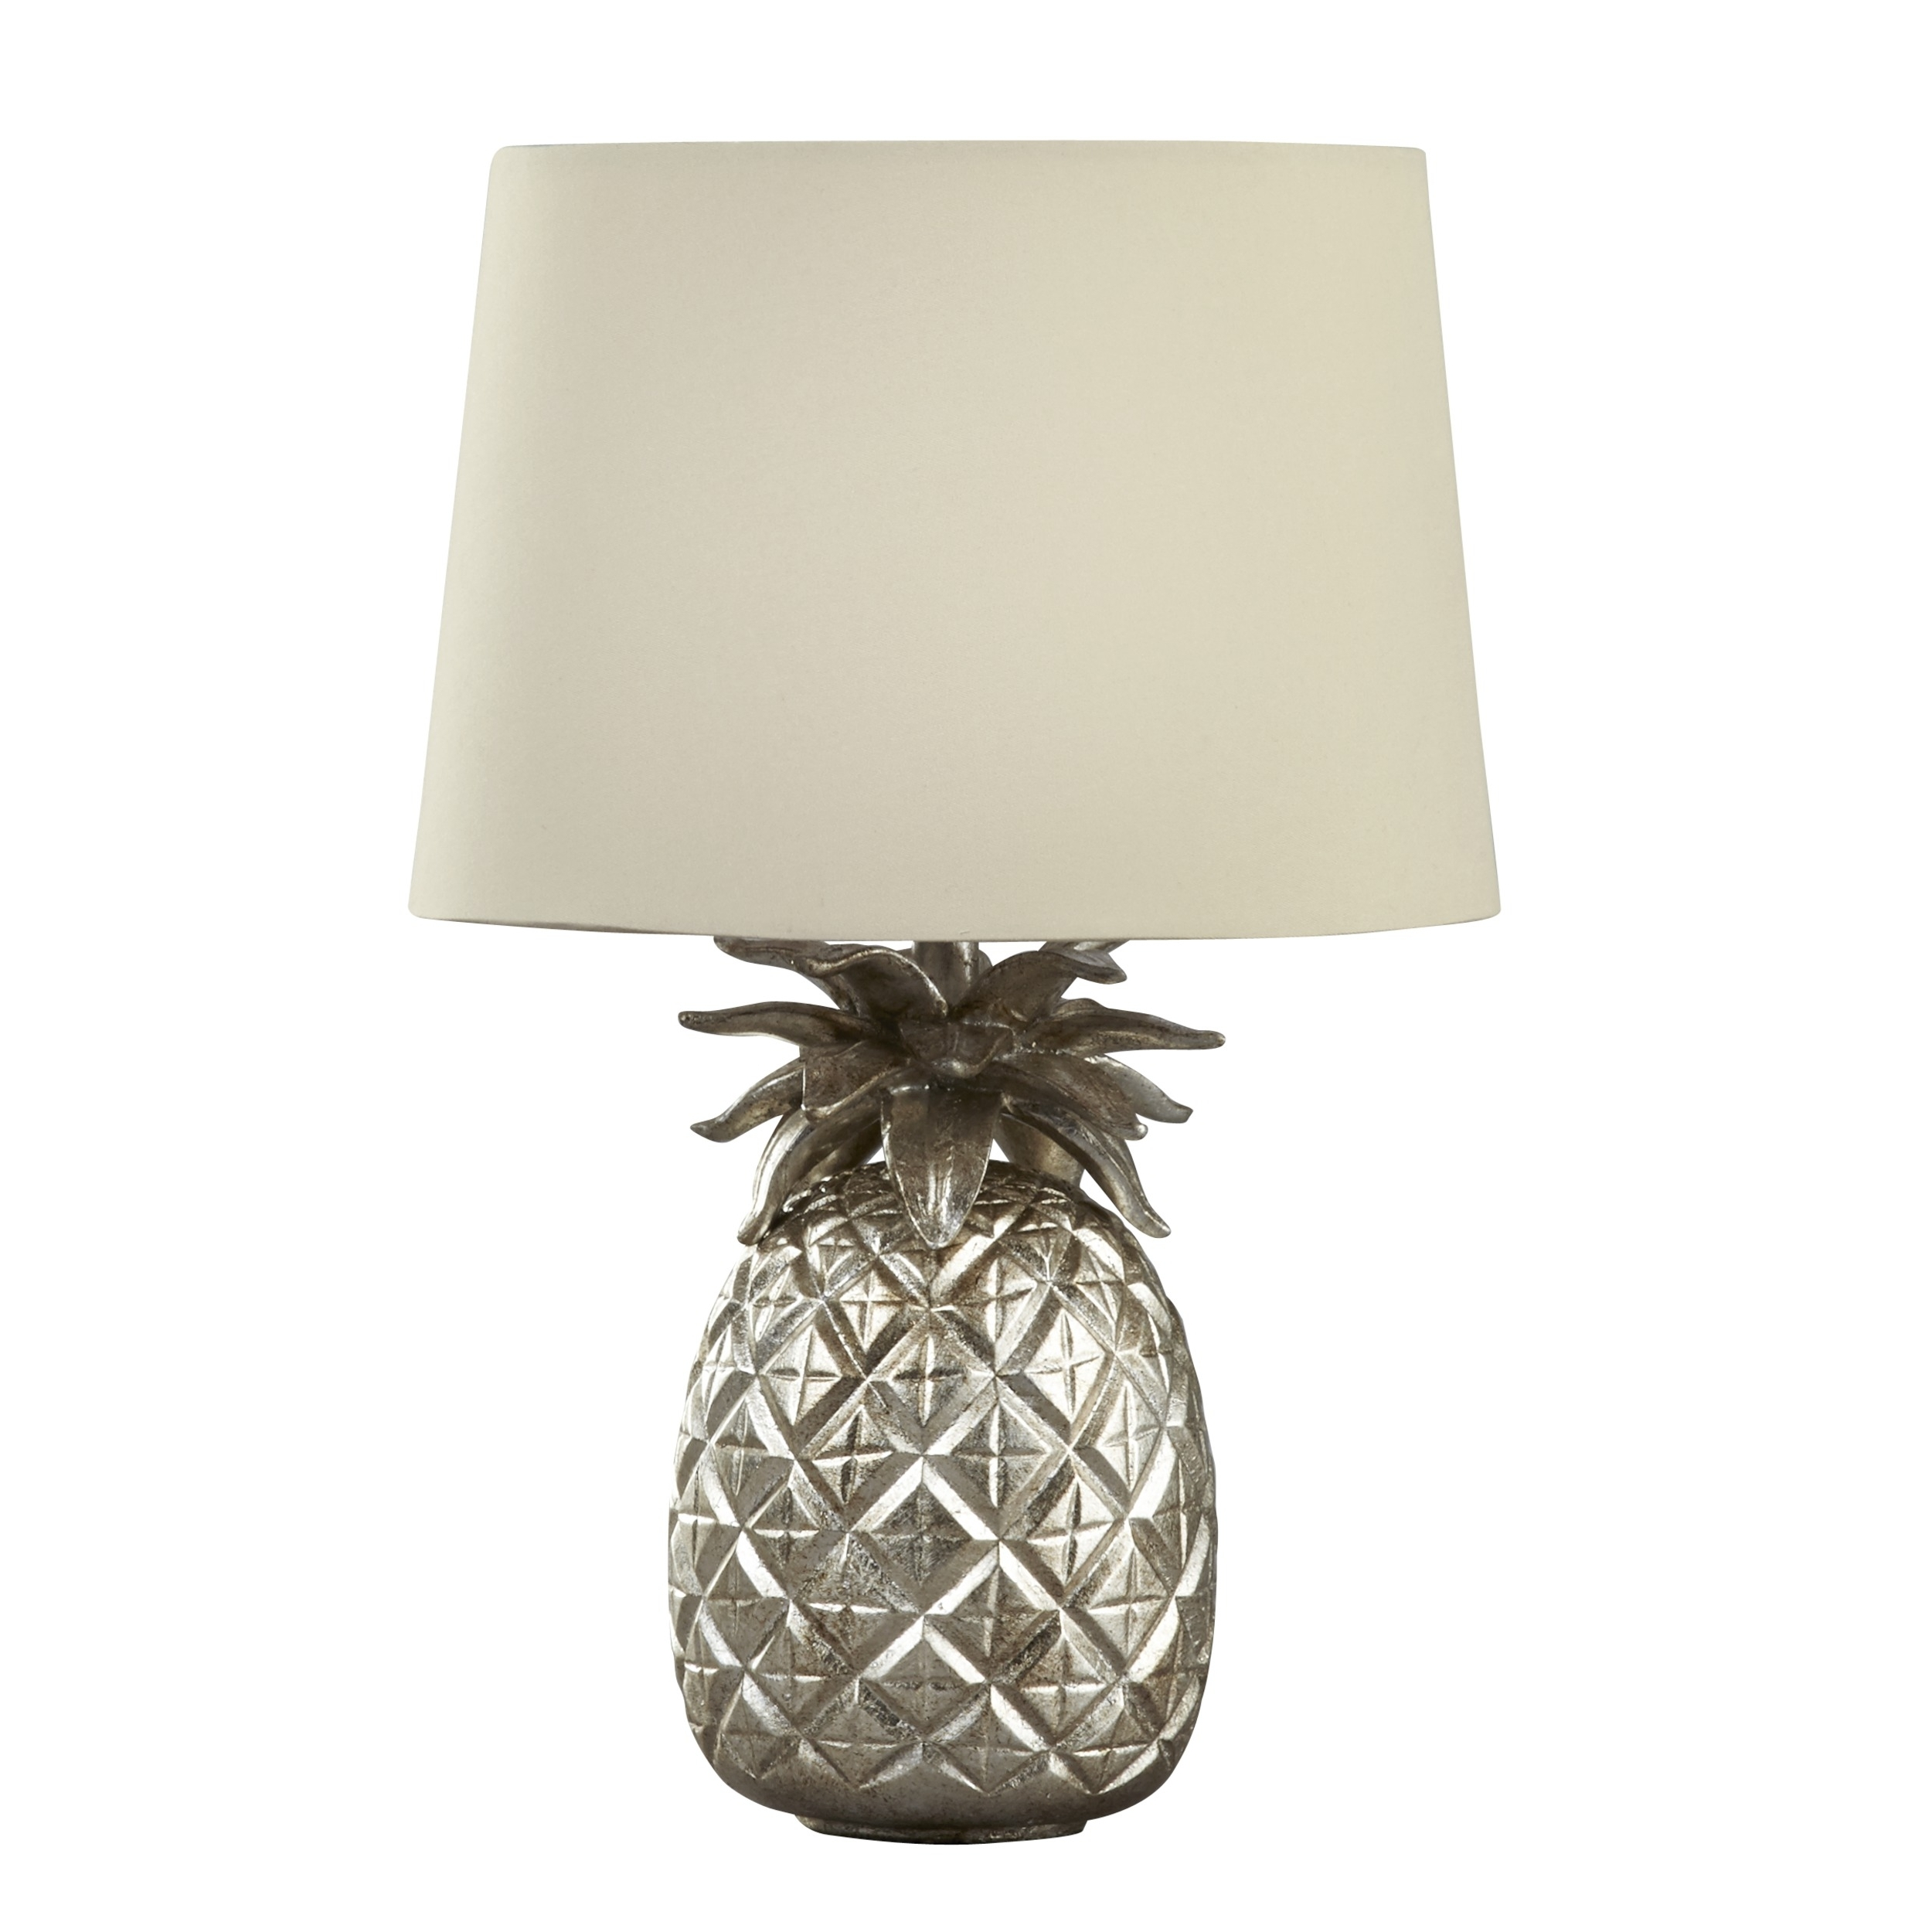 Pineapple Outdoor Light – Outdoor Lighting Ideas Pertaining To Newest Outdoor Pineapple Lanterns (Gallery 14 of 20)